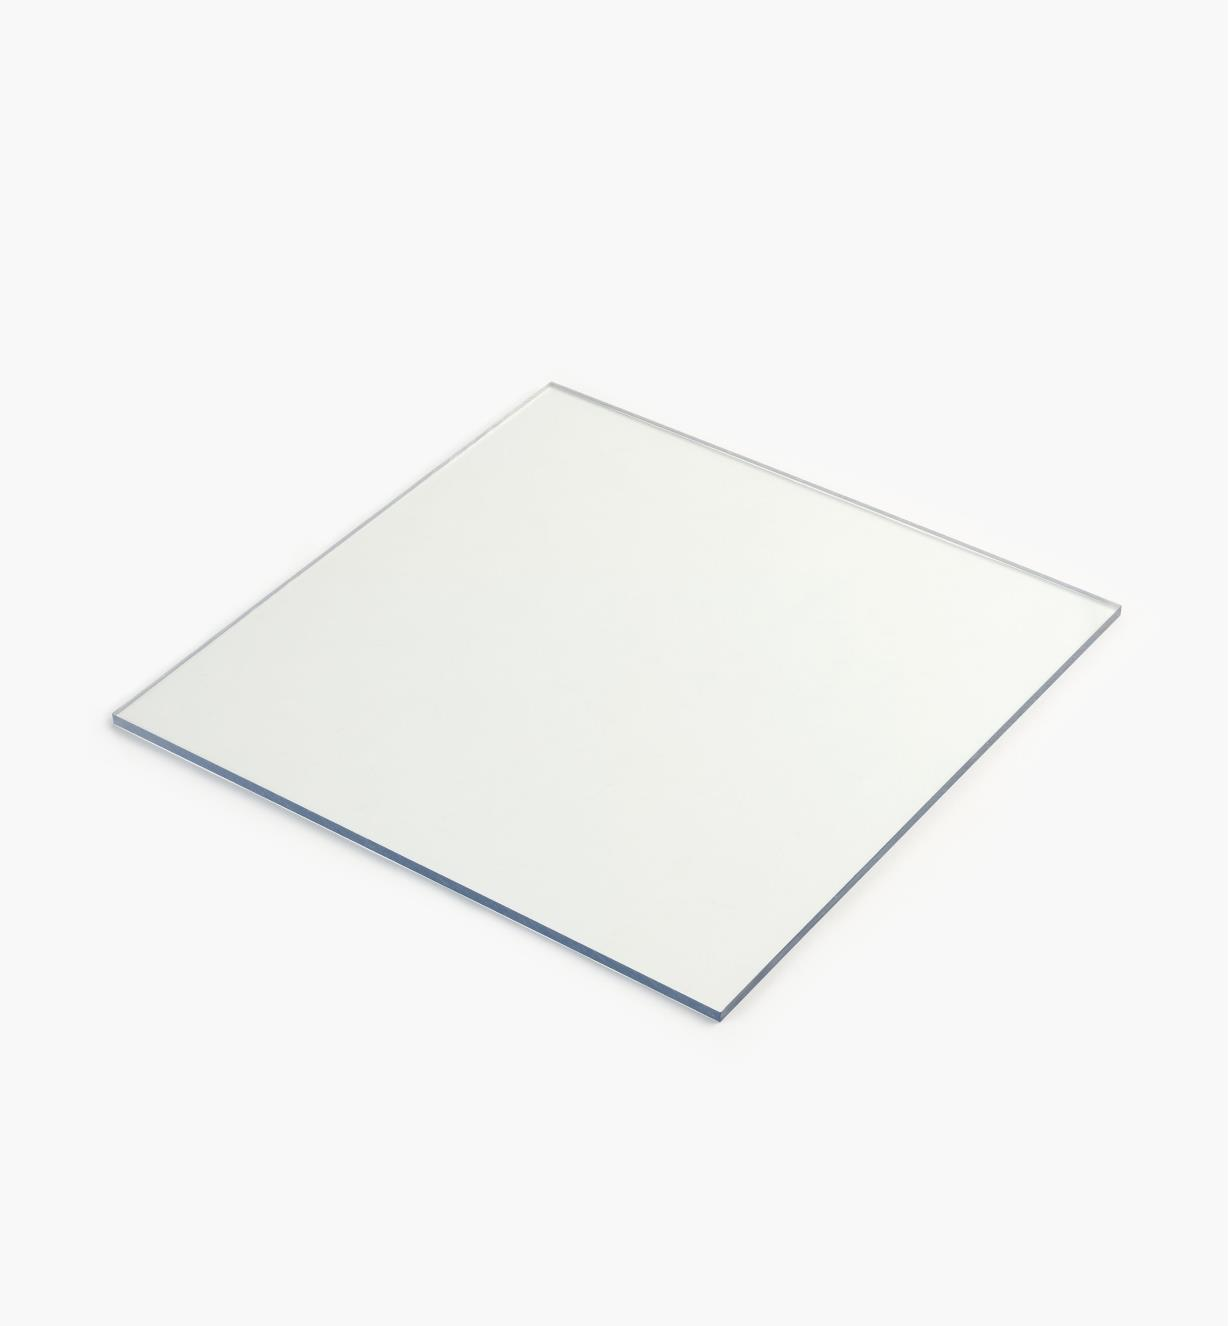 "46J8612 - 1/4"" Polycarbonate Sheet"